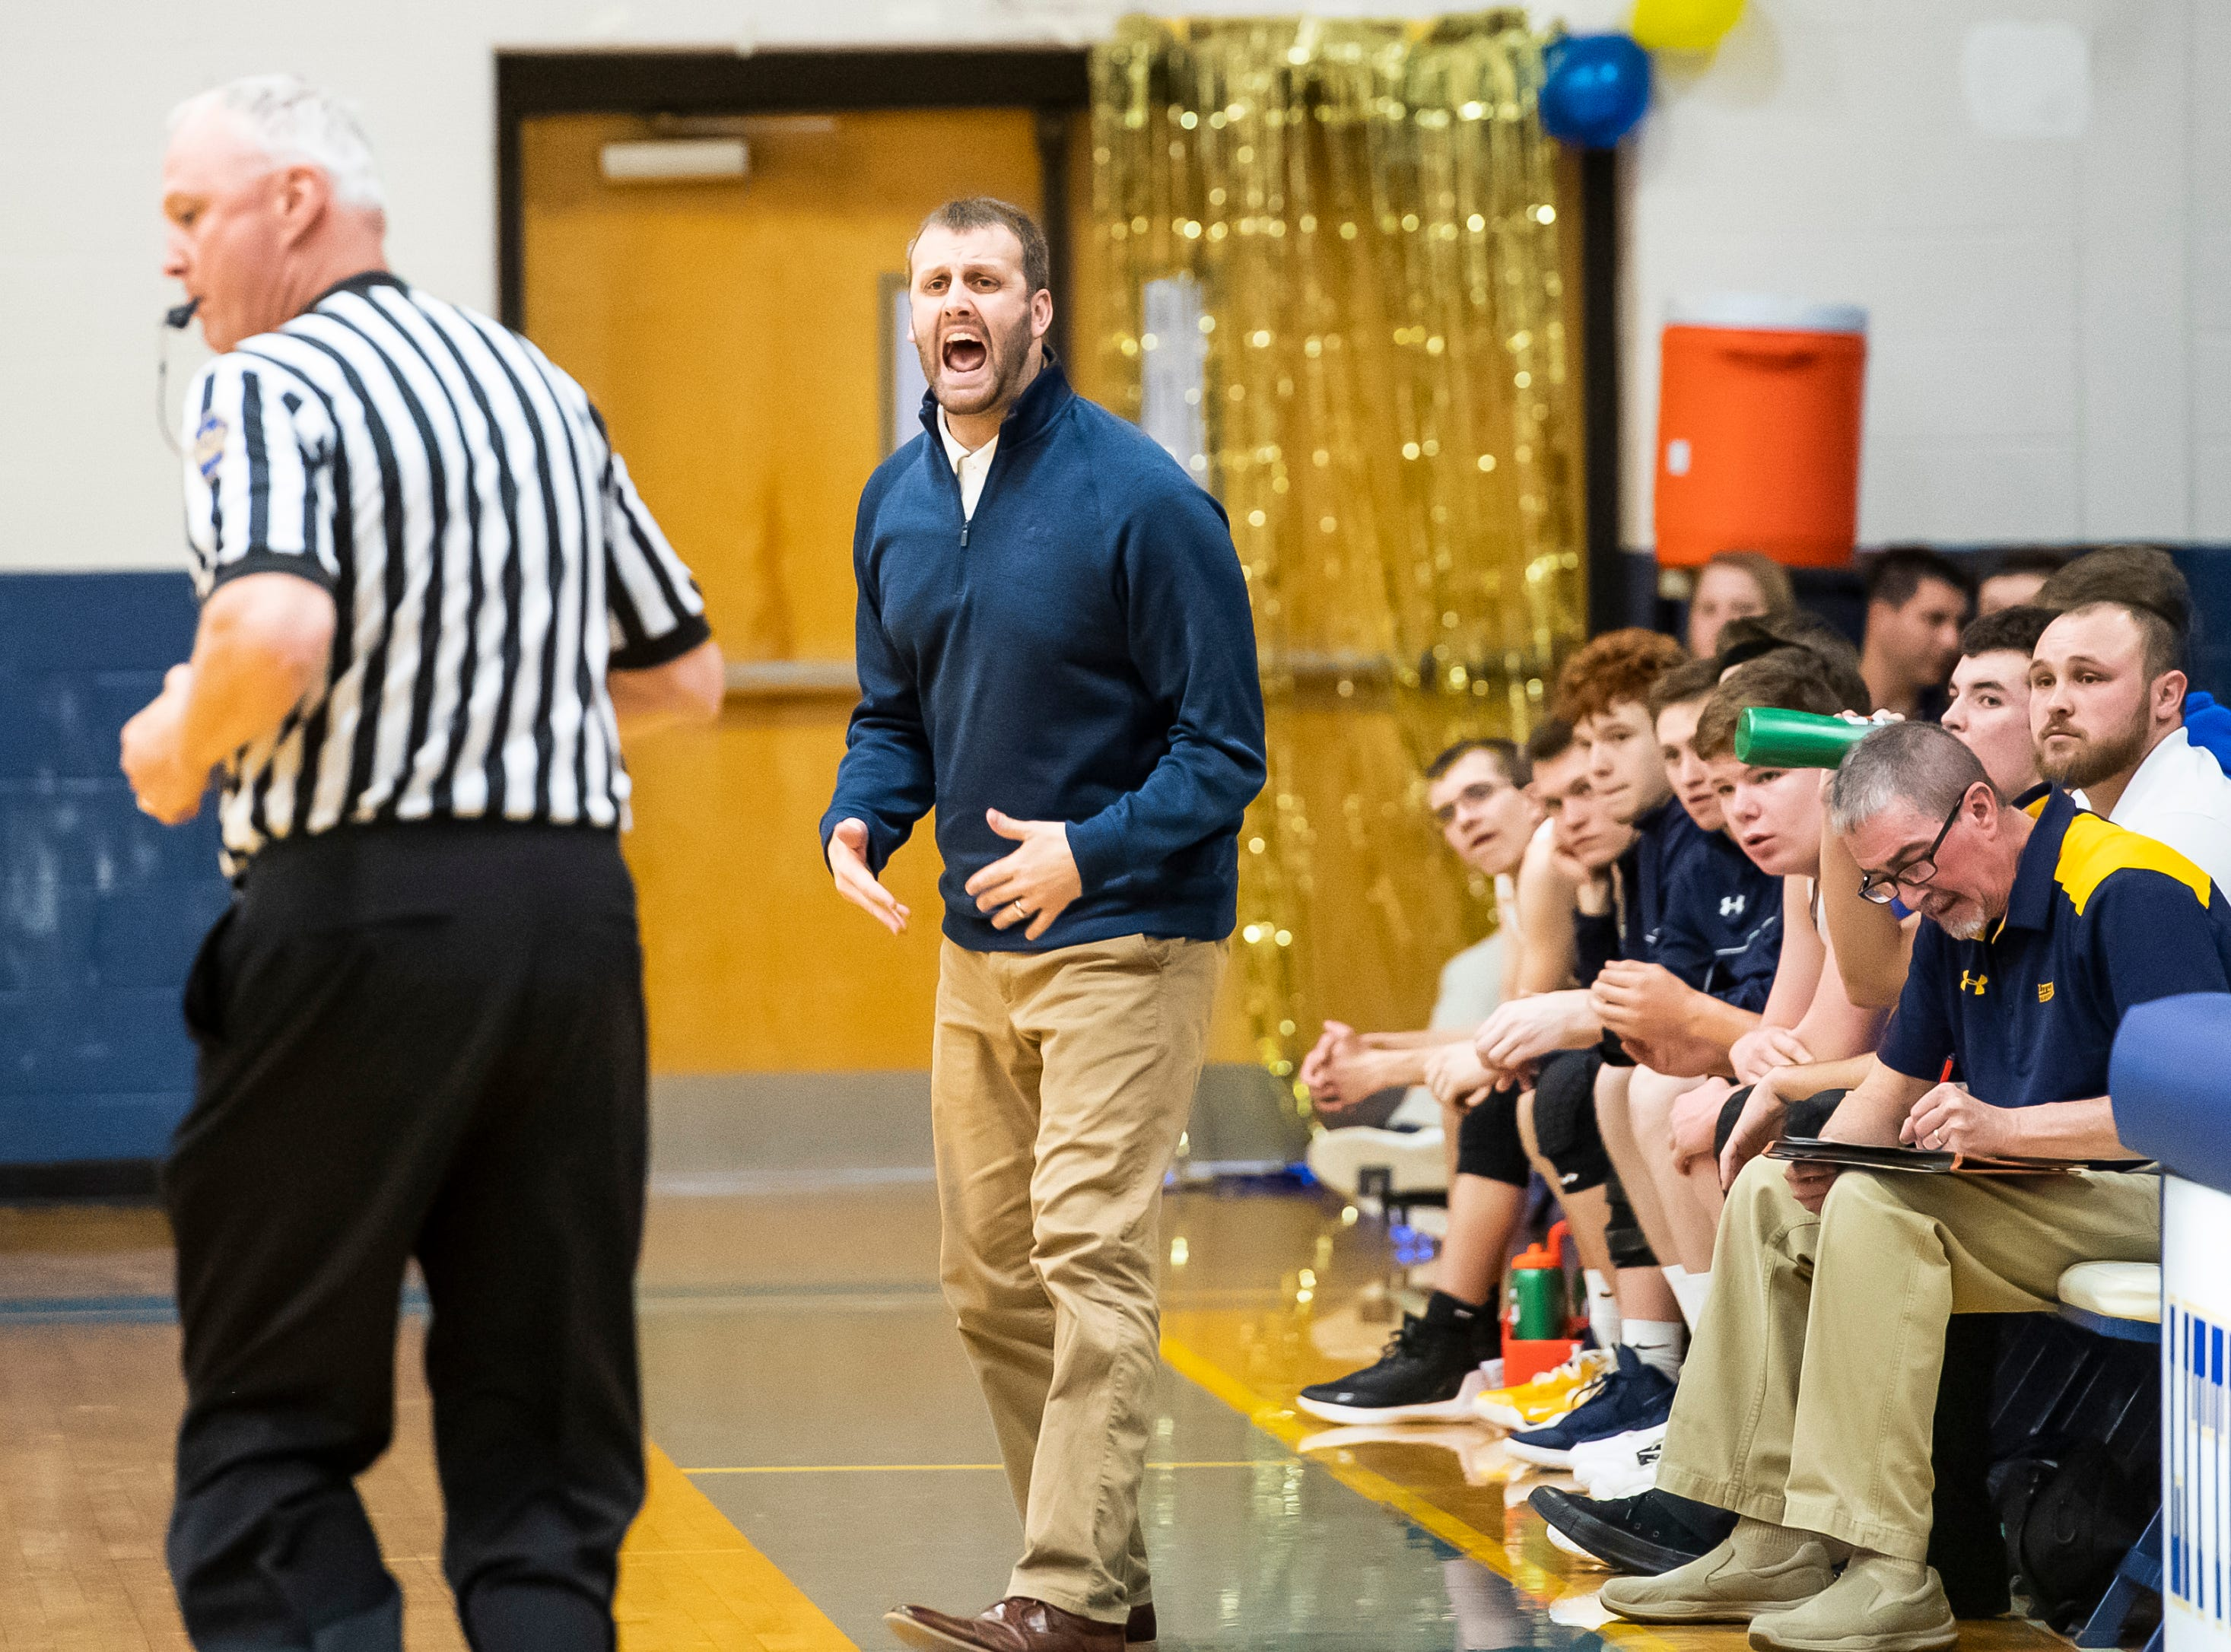 Littlestown head coach Jonathan Forster reacts after a non-call during play against Biglerville Tuesday, February 5, 2019. The Bolts won 54-46 on senior night.